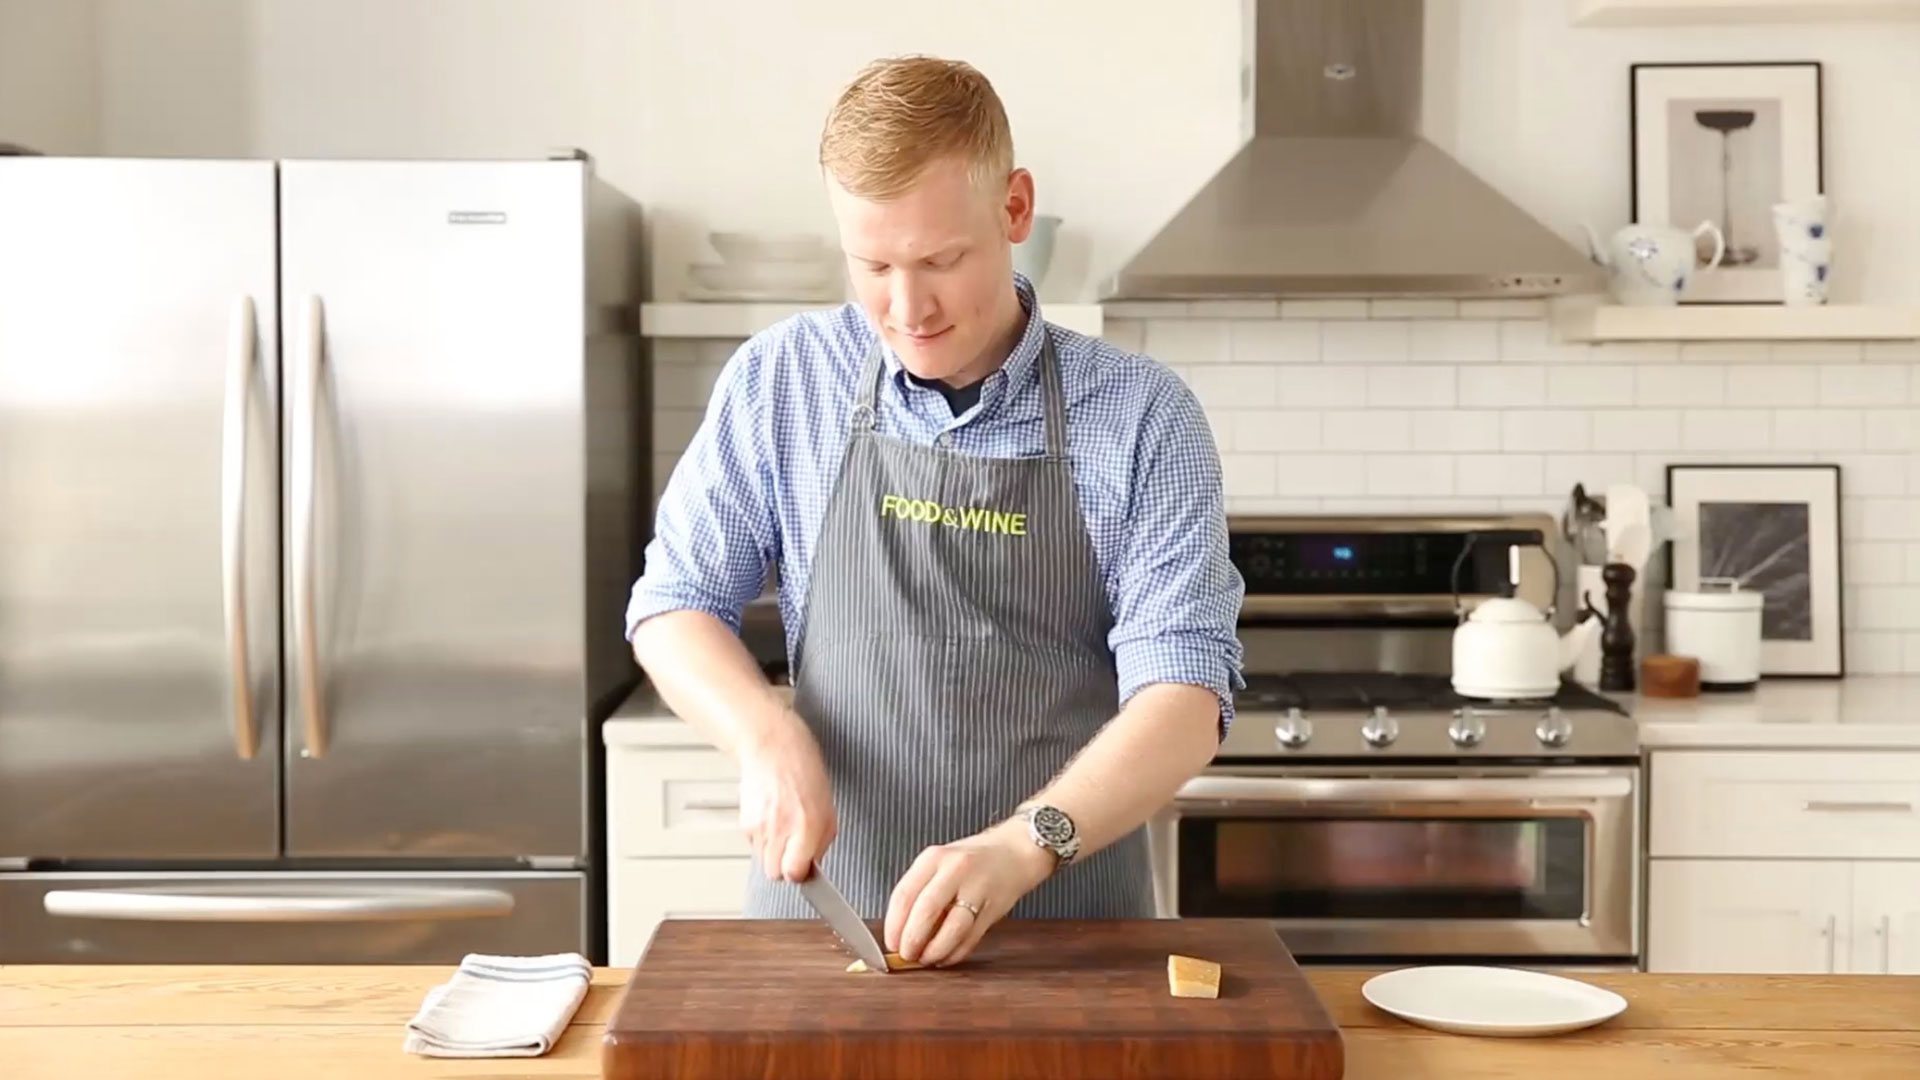 How to Make Cheese Crisps Like Richard Blais